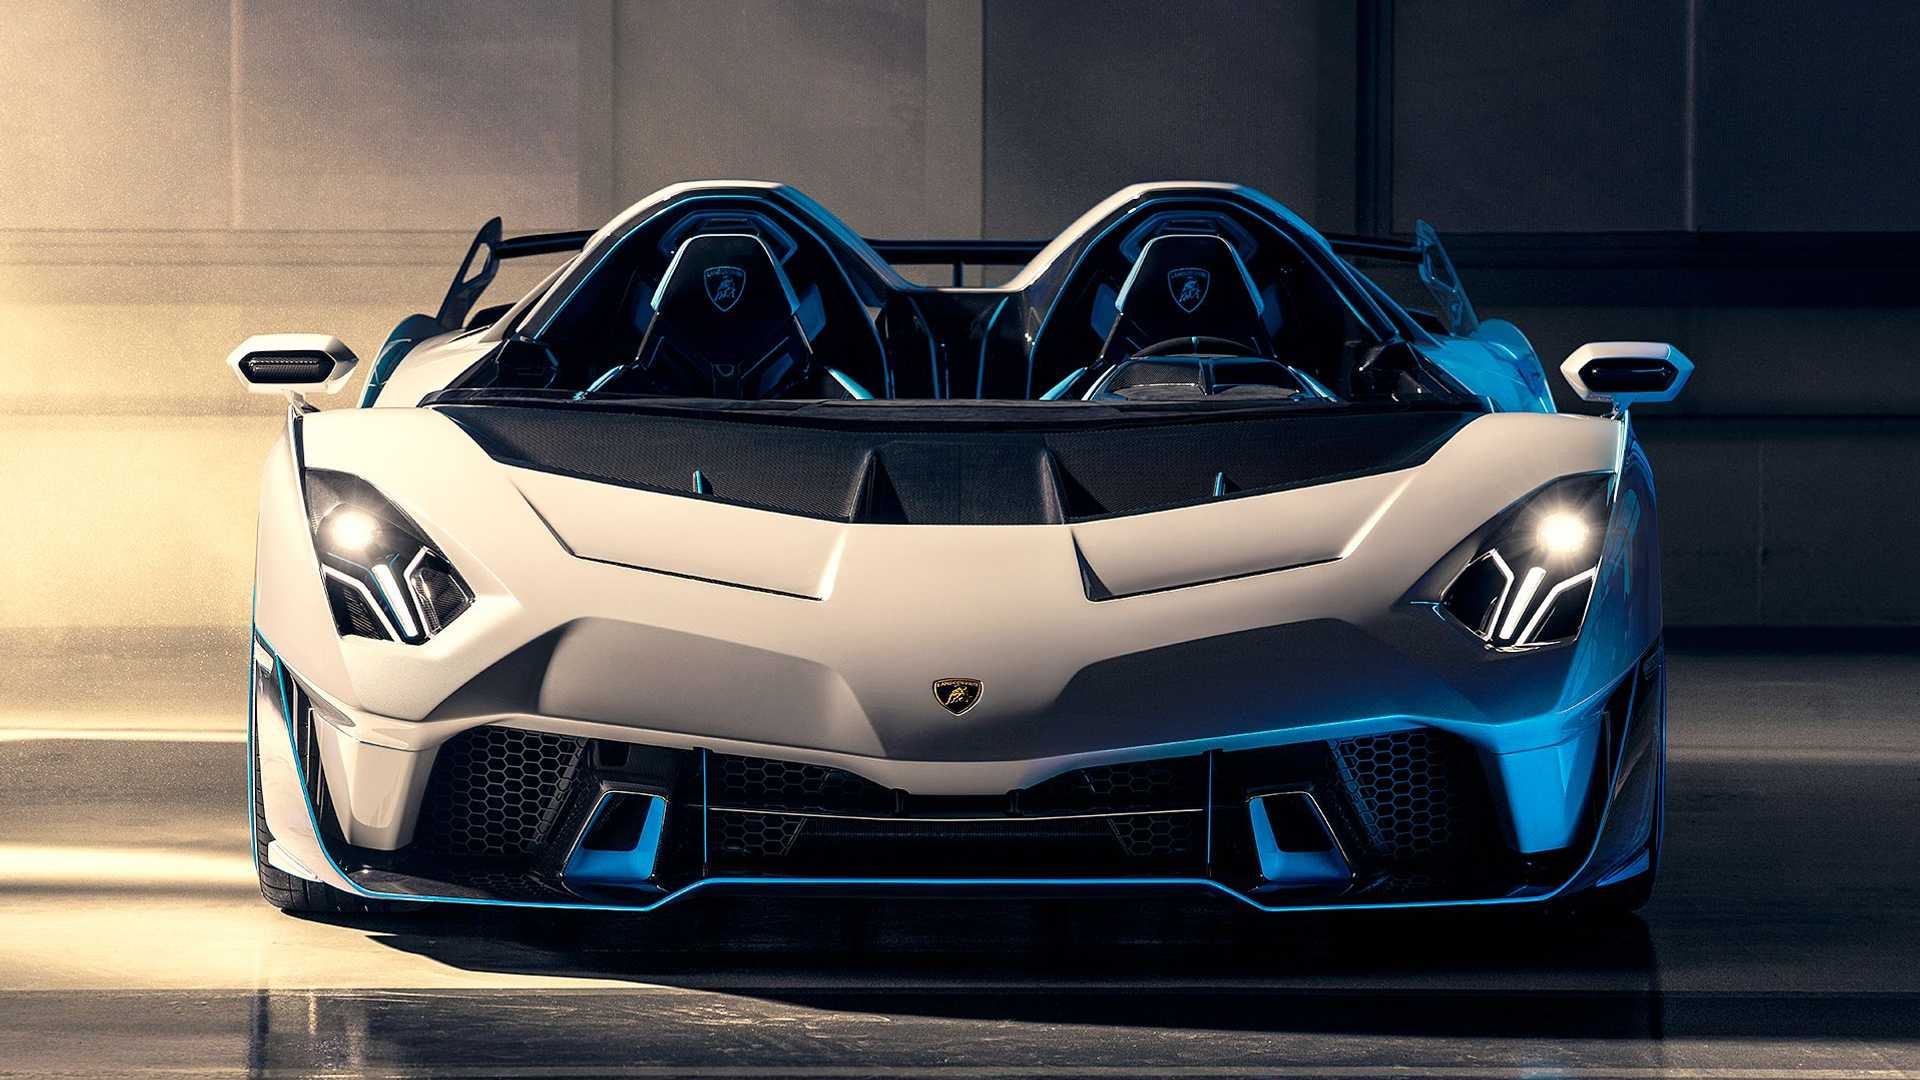 Lamborghini Has Already Sold Most Of Its Production Capacity For 2021